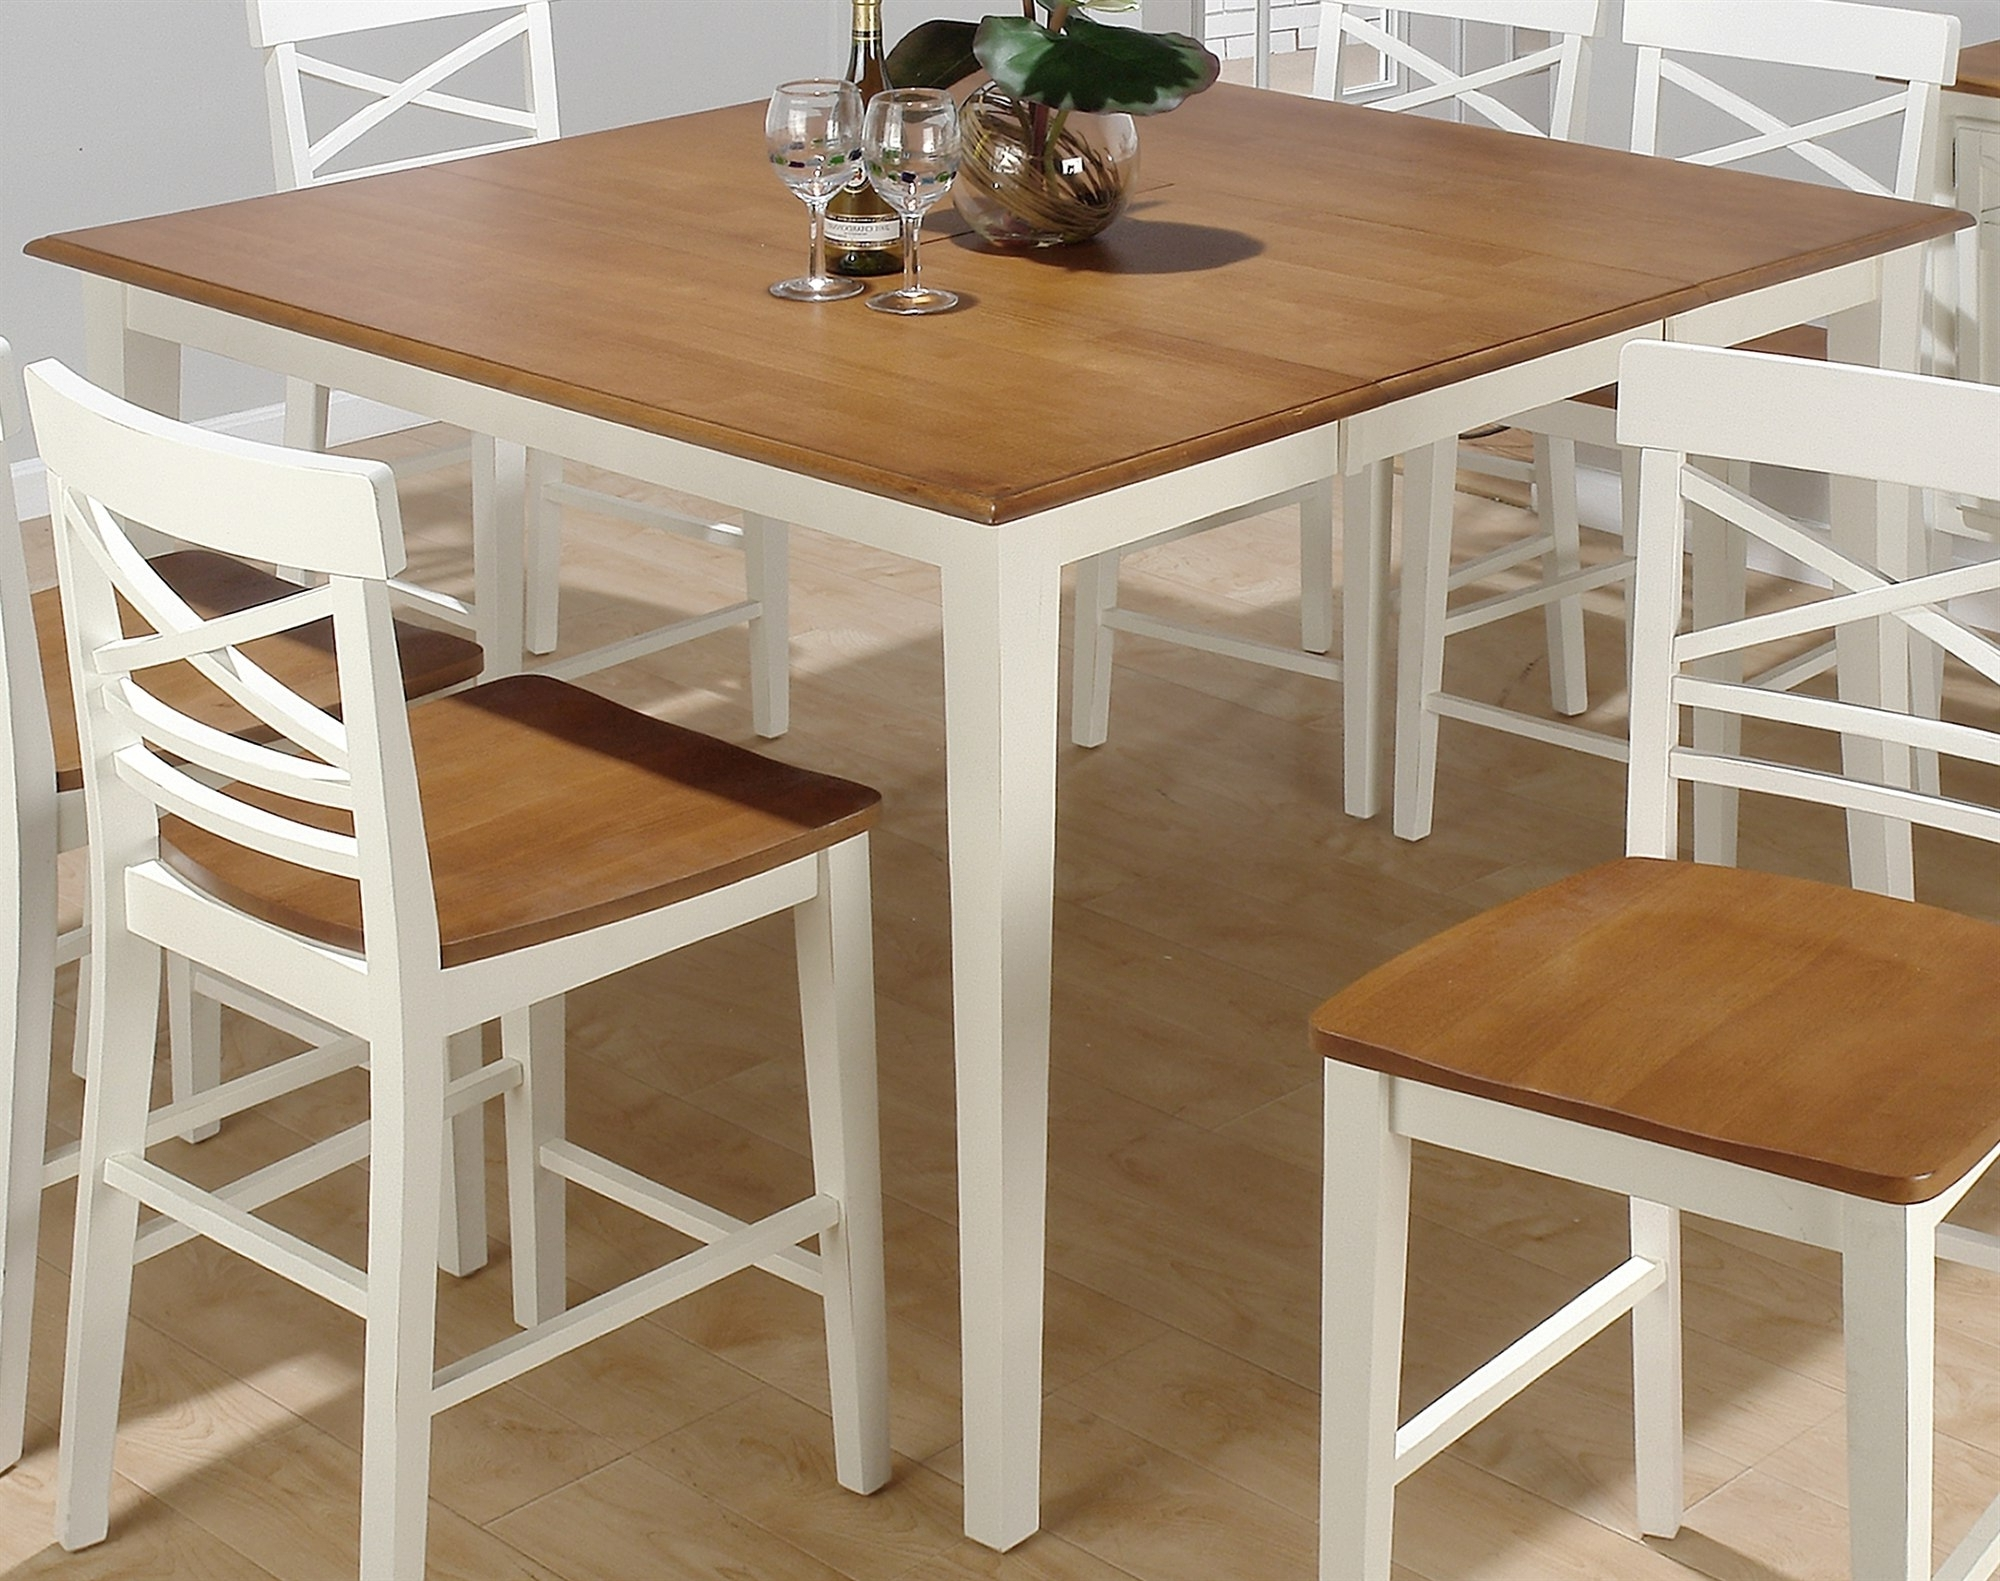 Preferred Square Extendable Dining Tables And Chairs Intended For Square Kitchen Table And 4 Chairs • Kitchen Chairs Ideas (View 16 of 25)